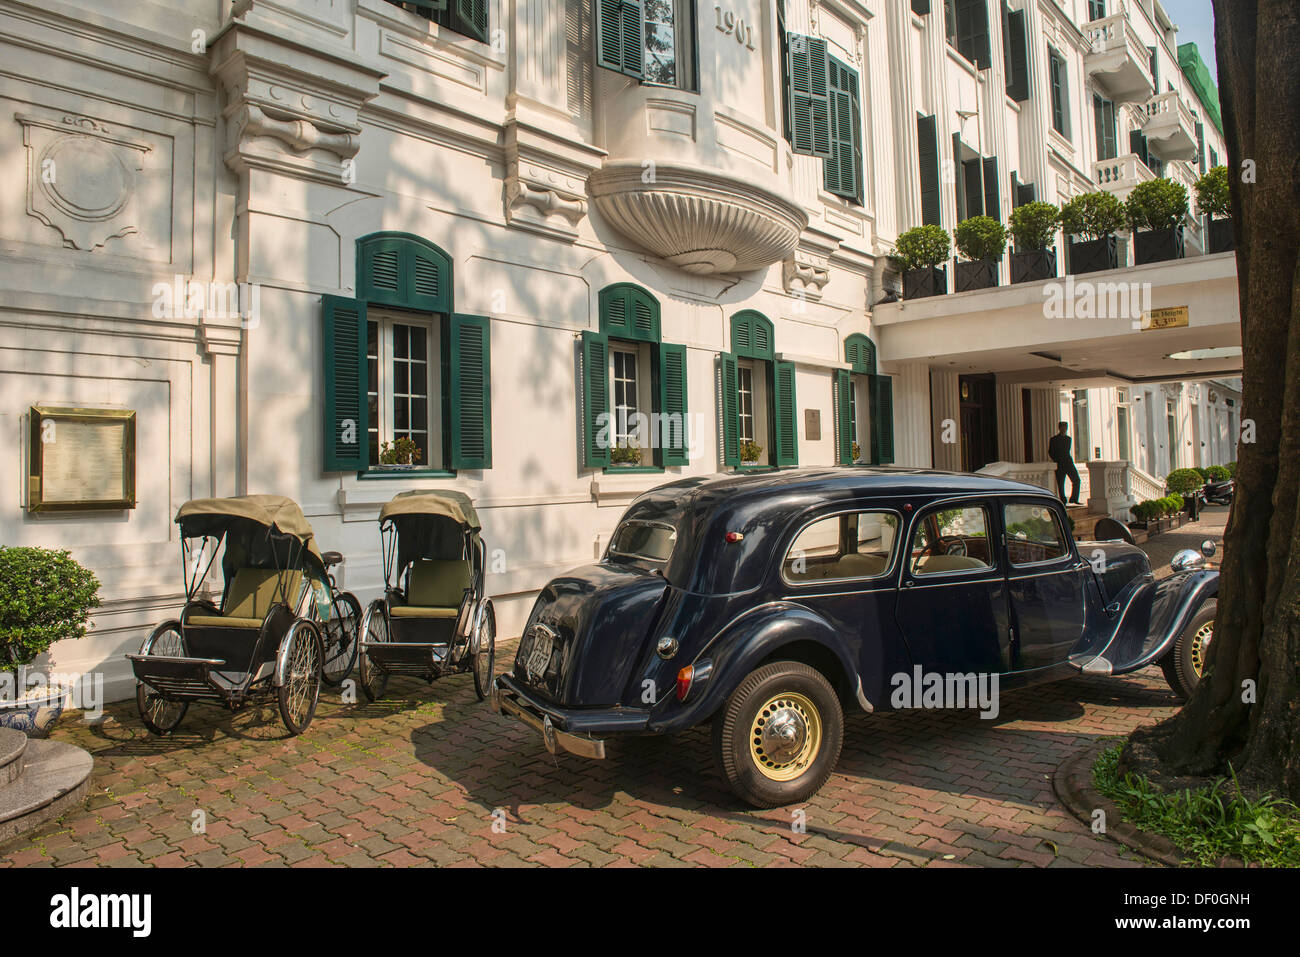 cyclos and vintage car in front of the historic Metropole Hotel in Hanoi, Vietnam - Stock Image